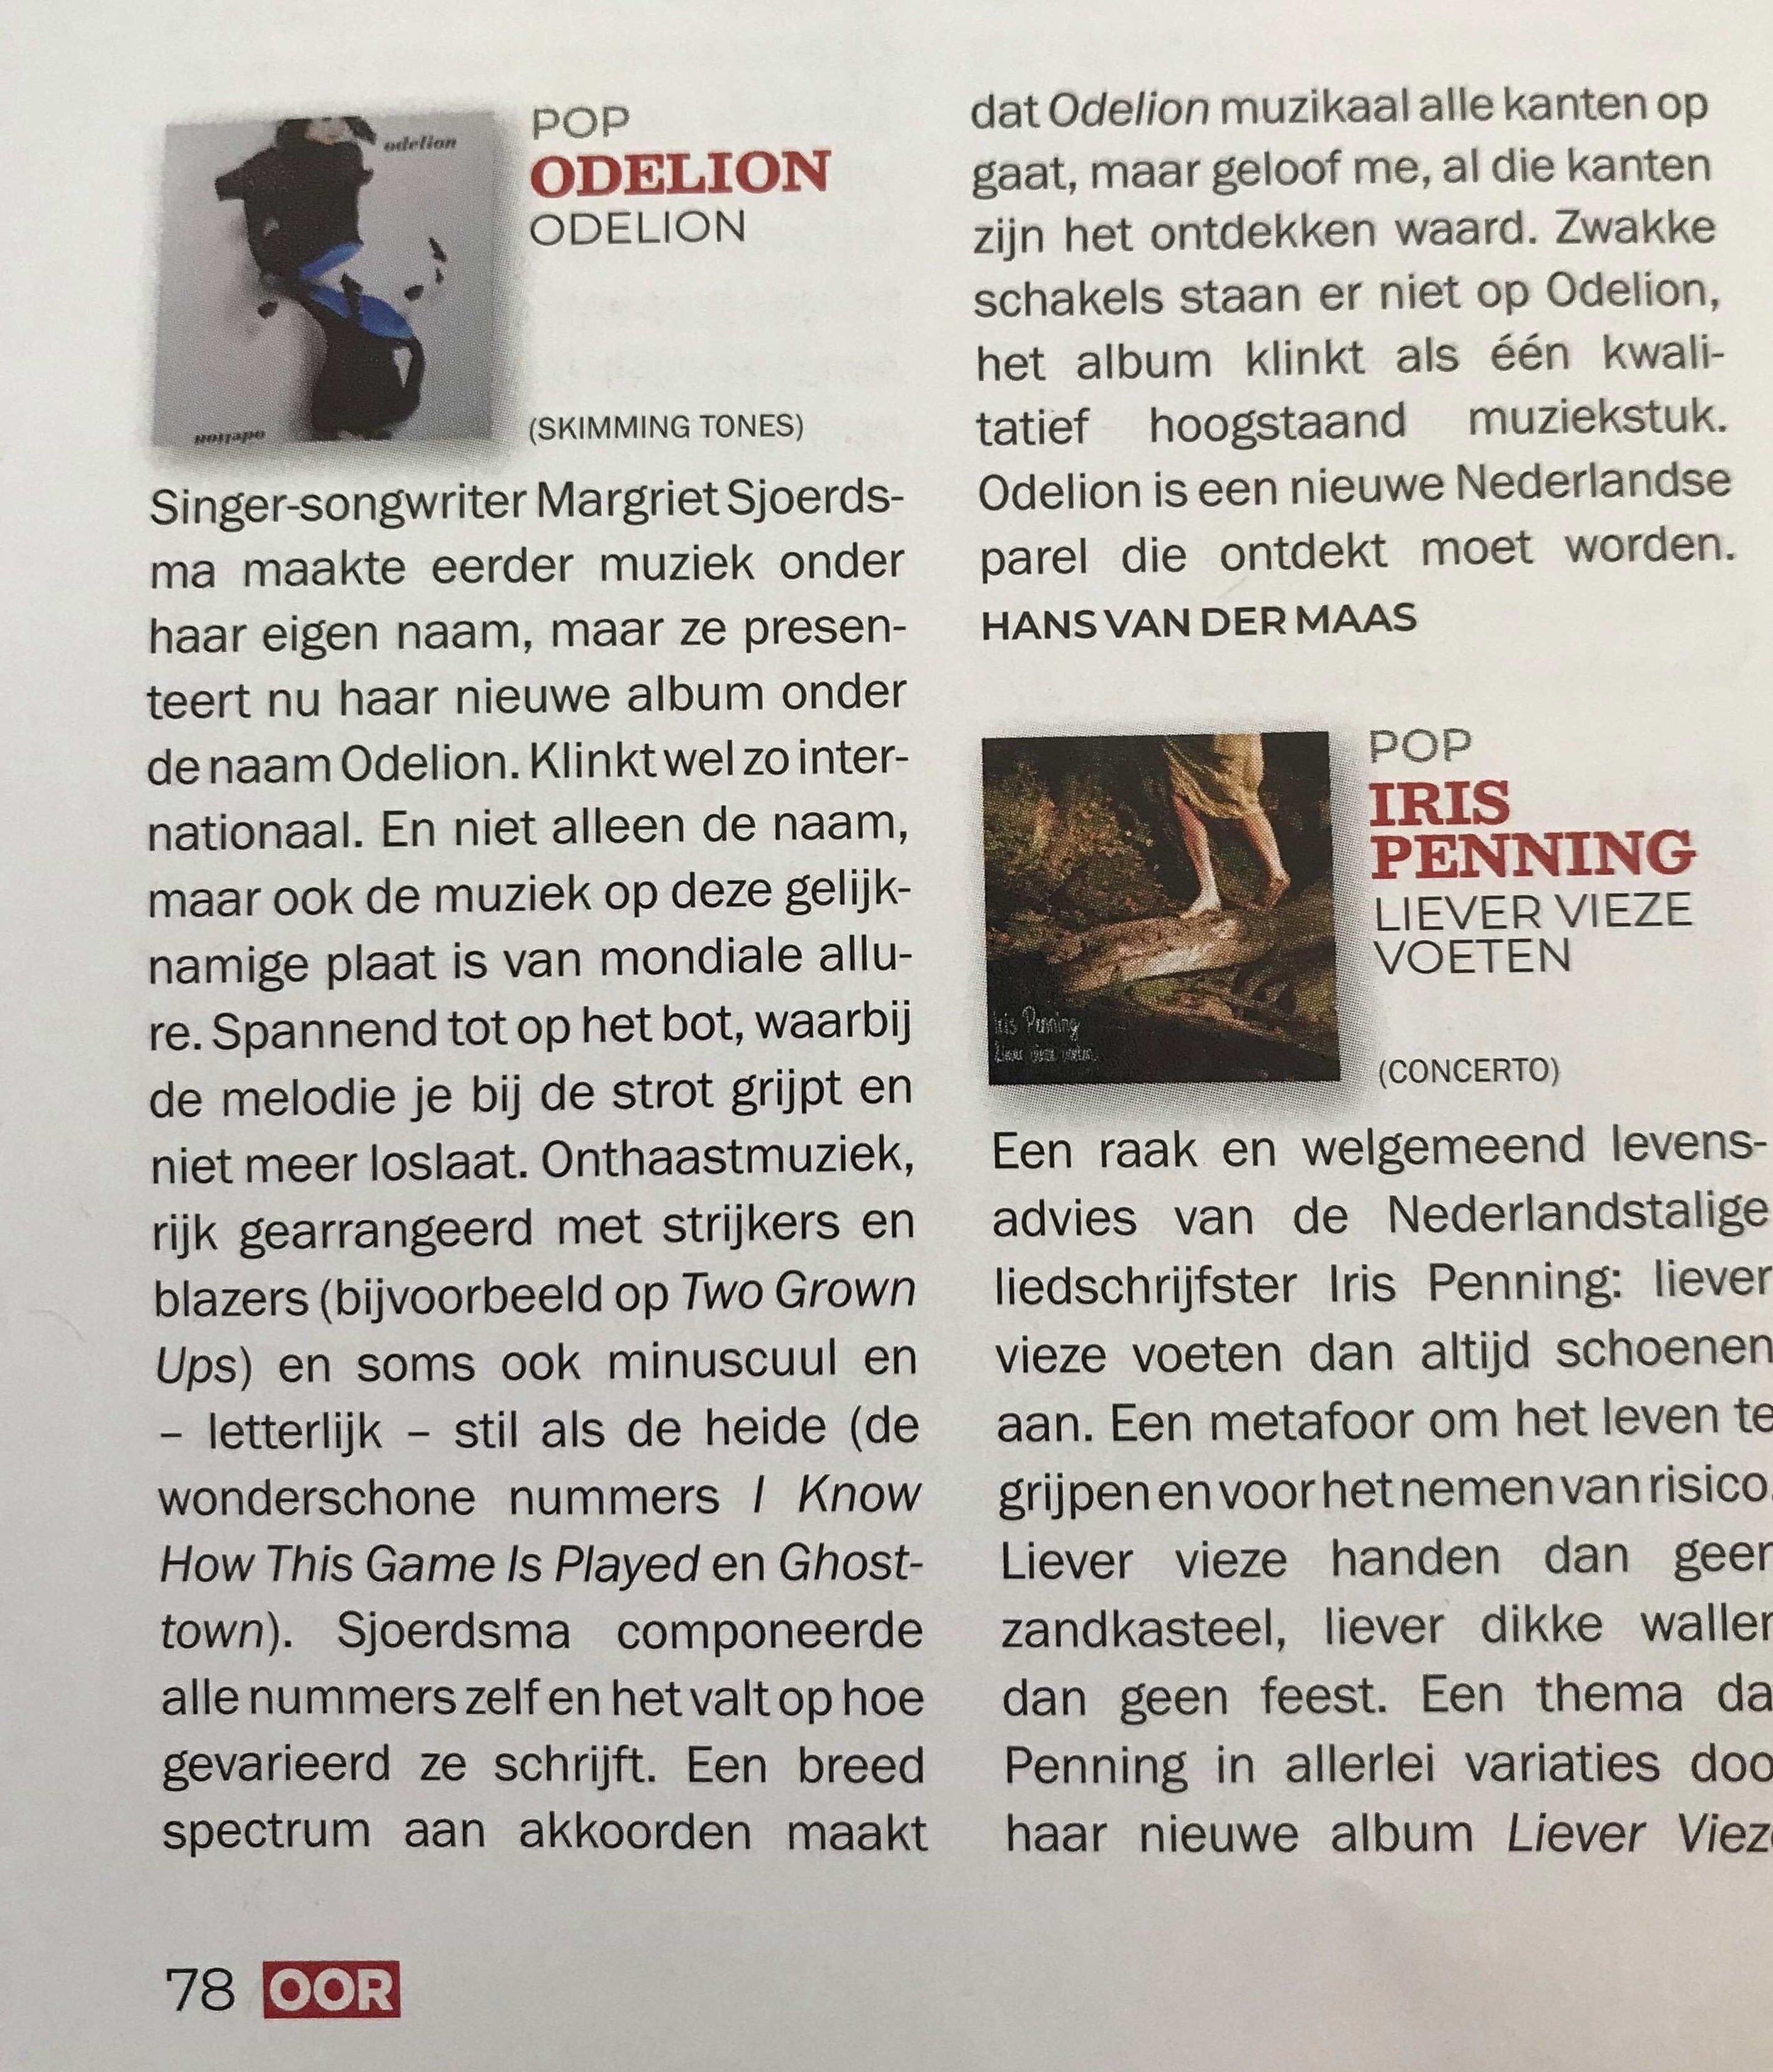 FIRST GREAT REVIEW!!! - 'ODELION IS A NEW DUTCH PEARL THAT NEEDS TO BE DISCOVERED'